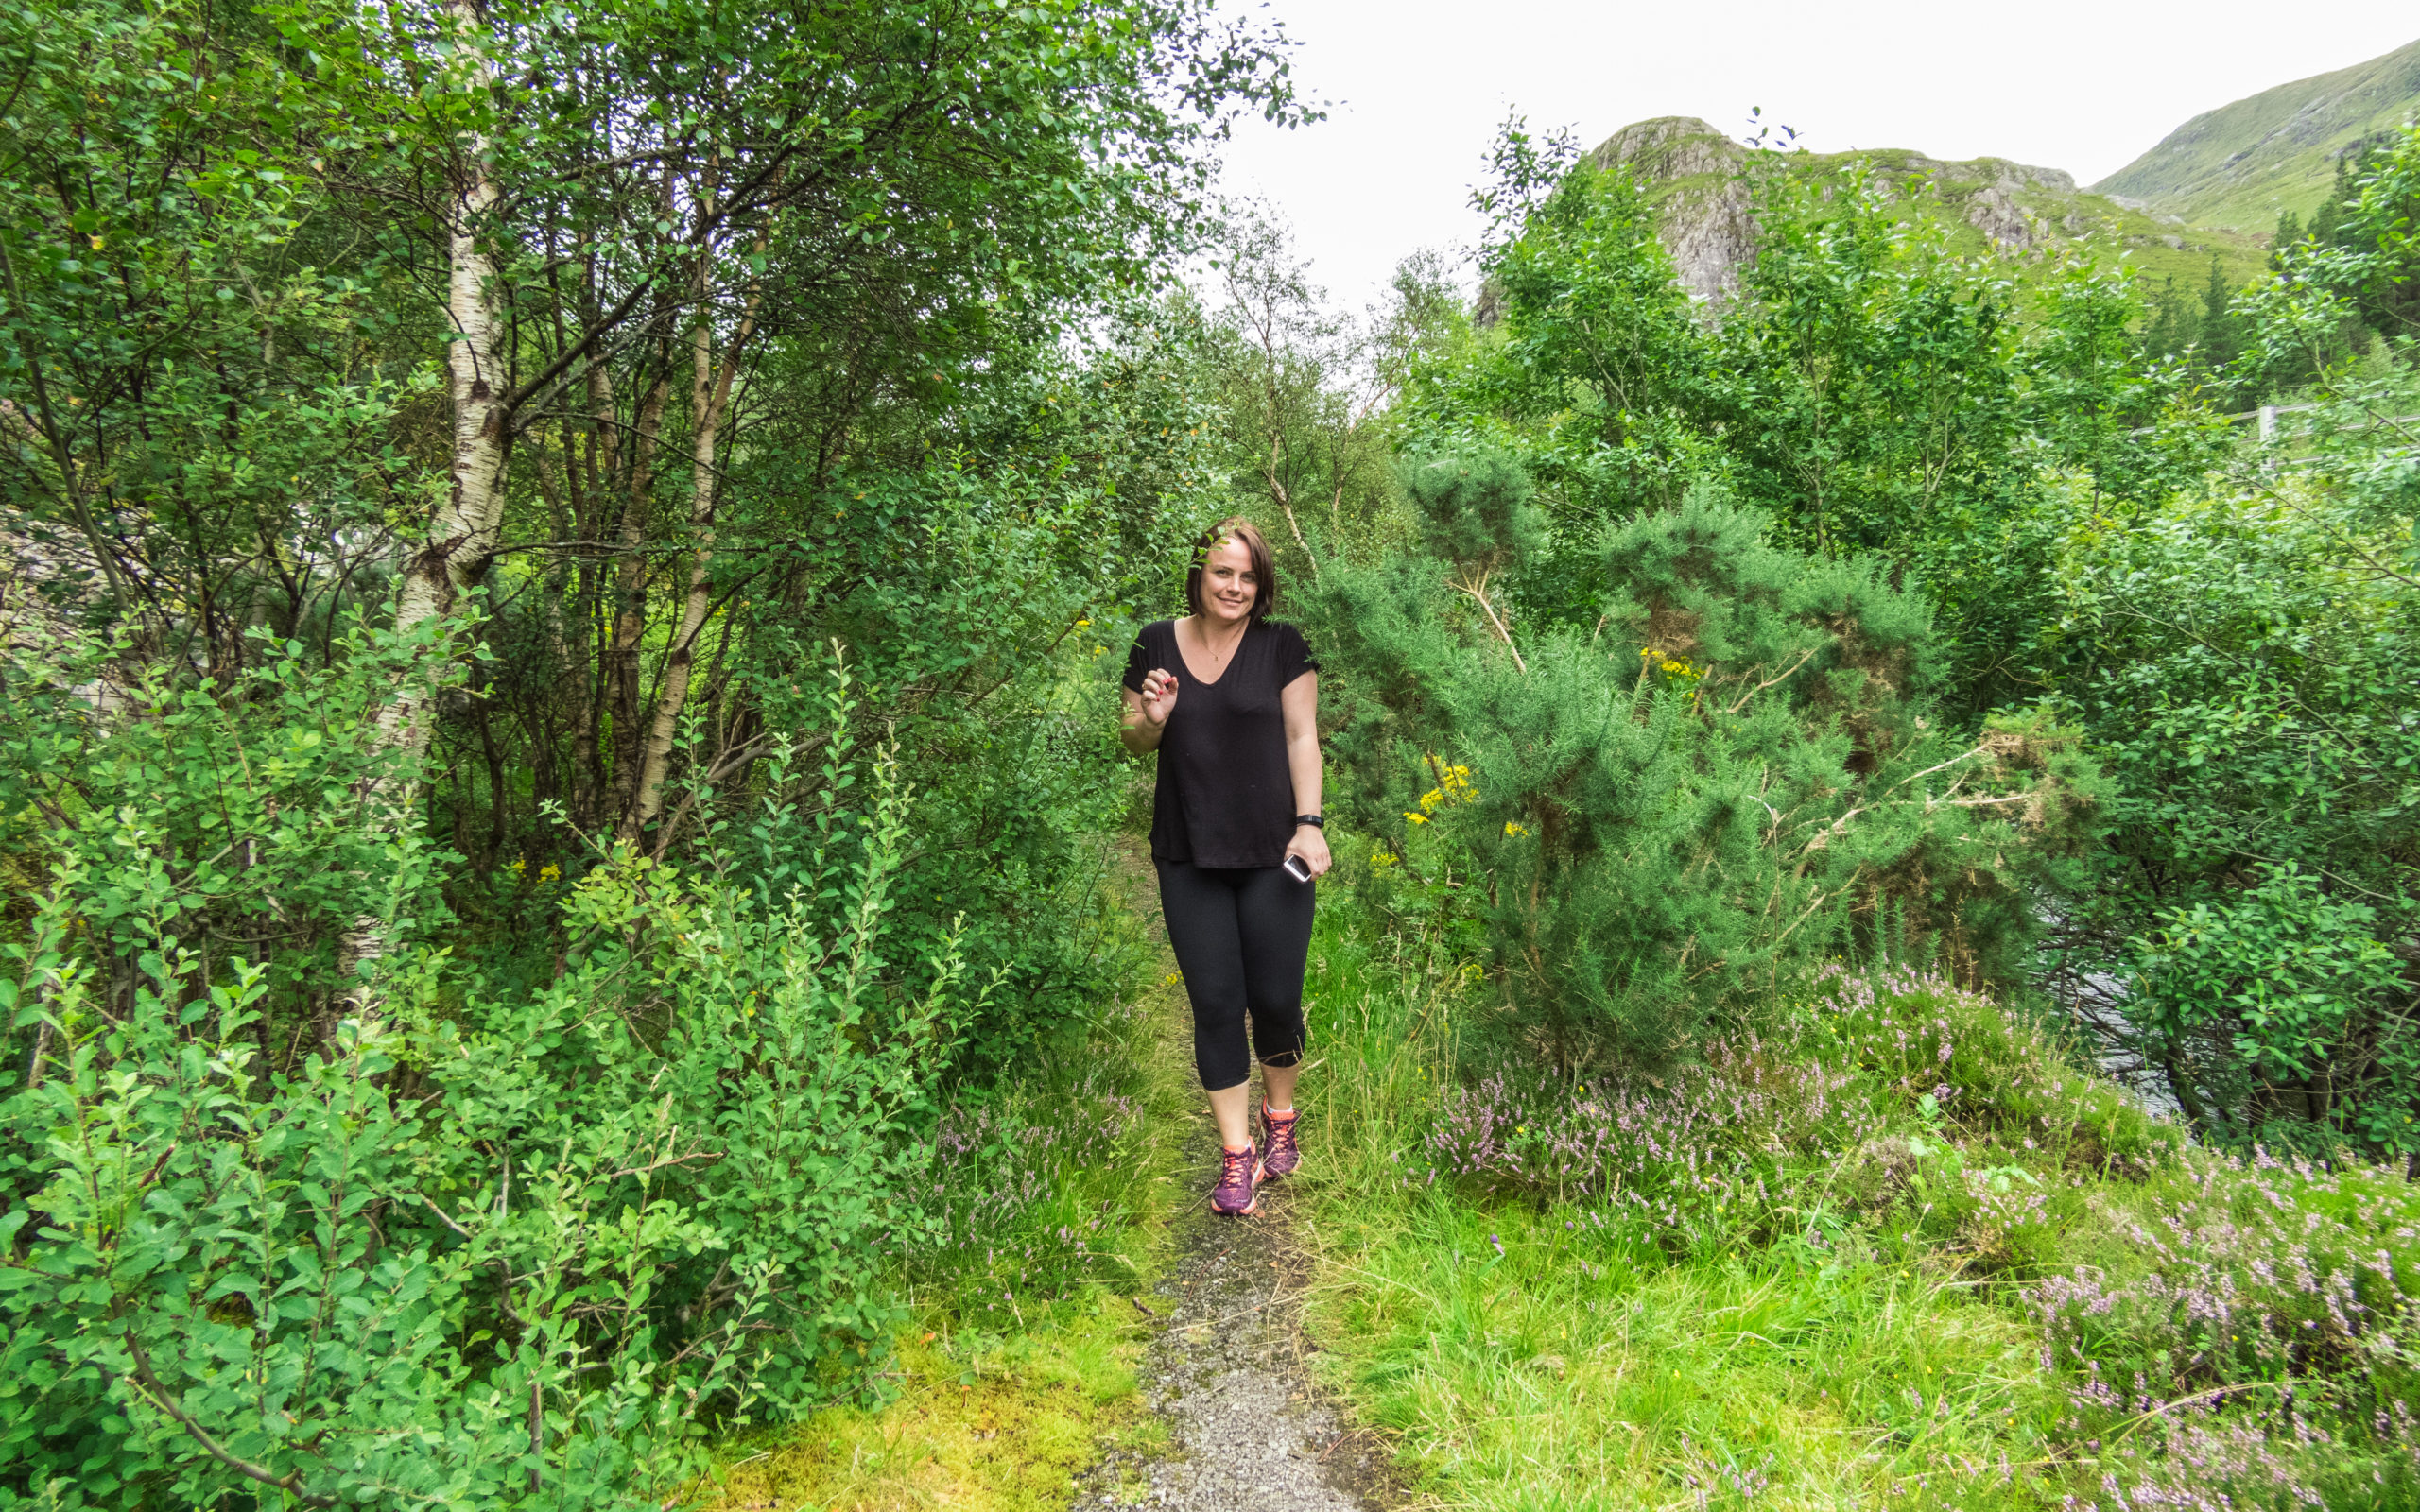 Hiking the Scottish Highlands with Louise Connolly